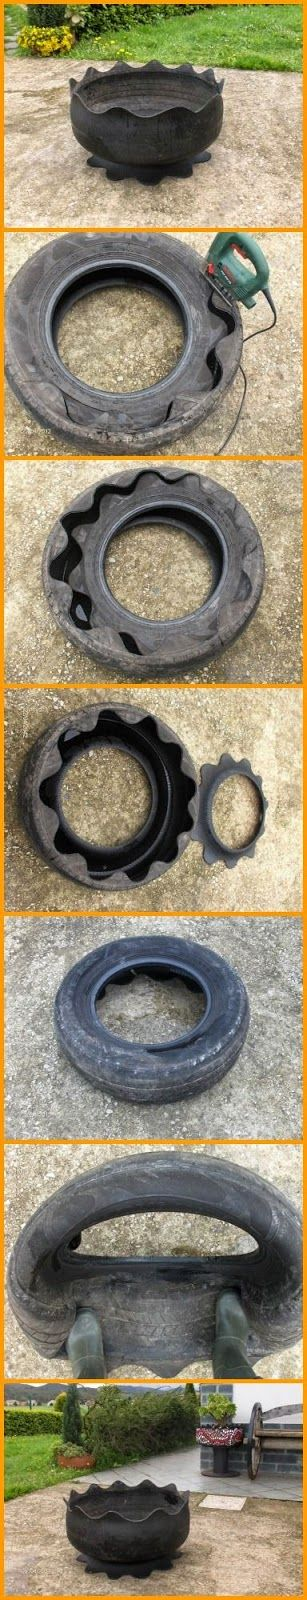 Diy garden idea ~ Your imagination is the limit. This tire turned into planter is the perfect example.